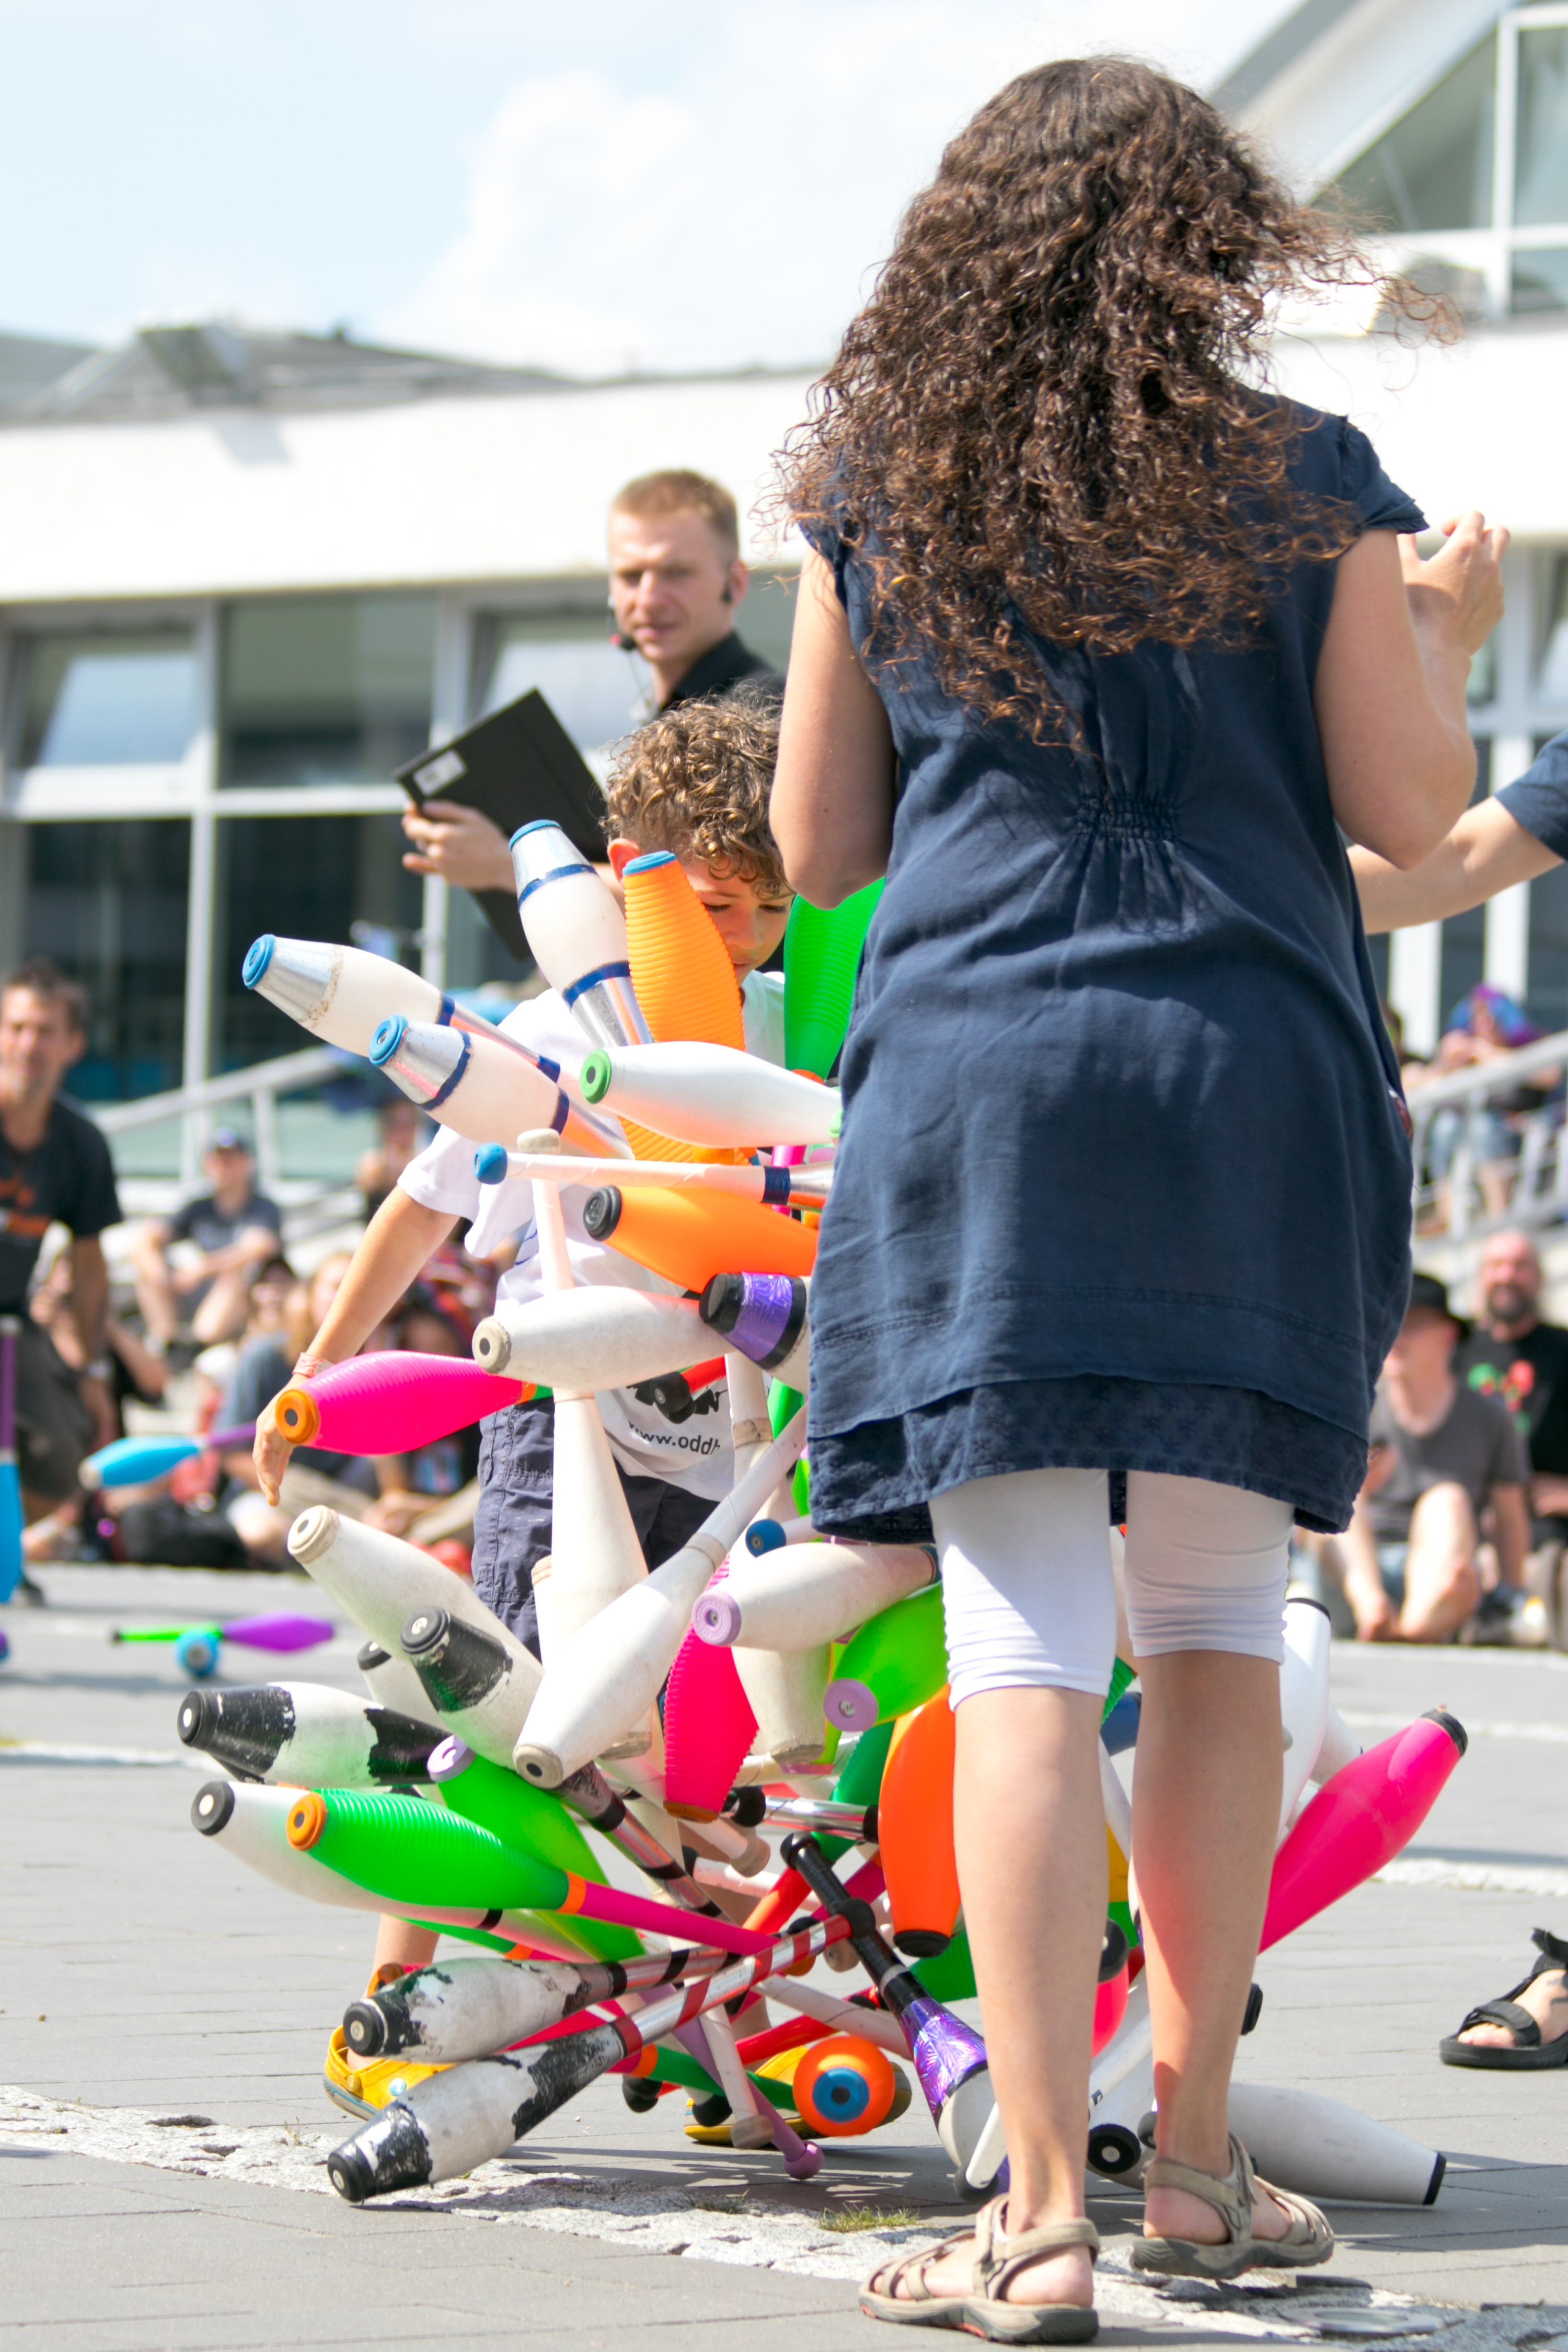 EJC 2017 Lublin Day 8: Juggling Games.